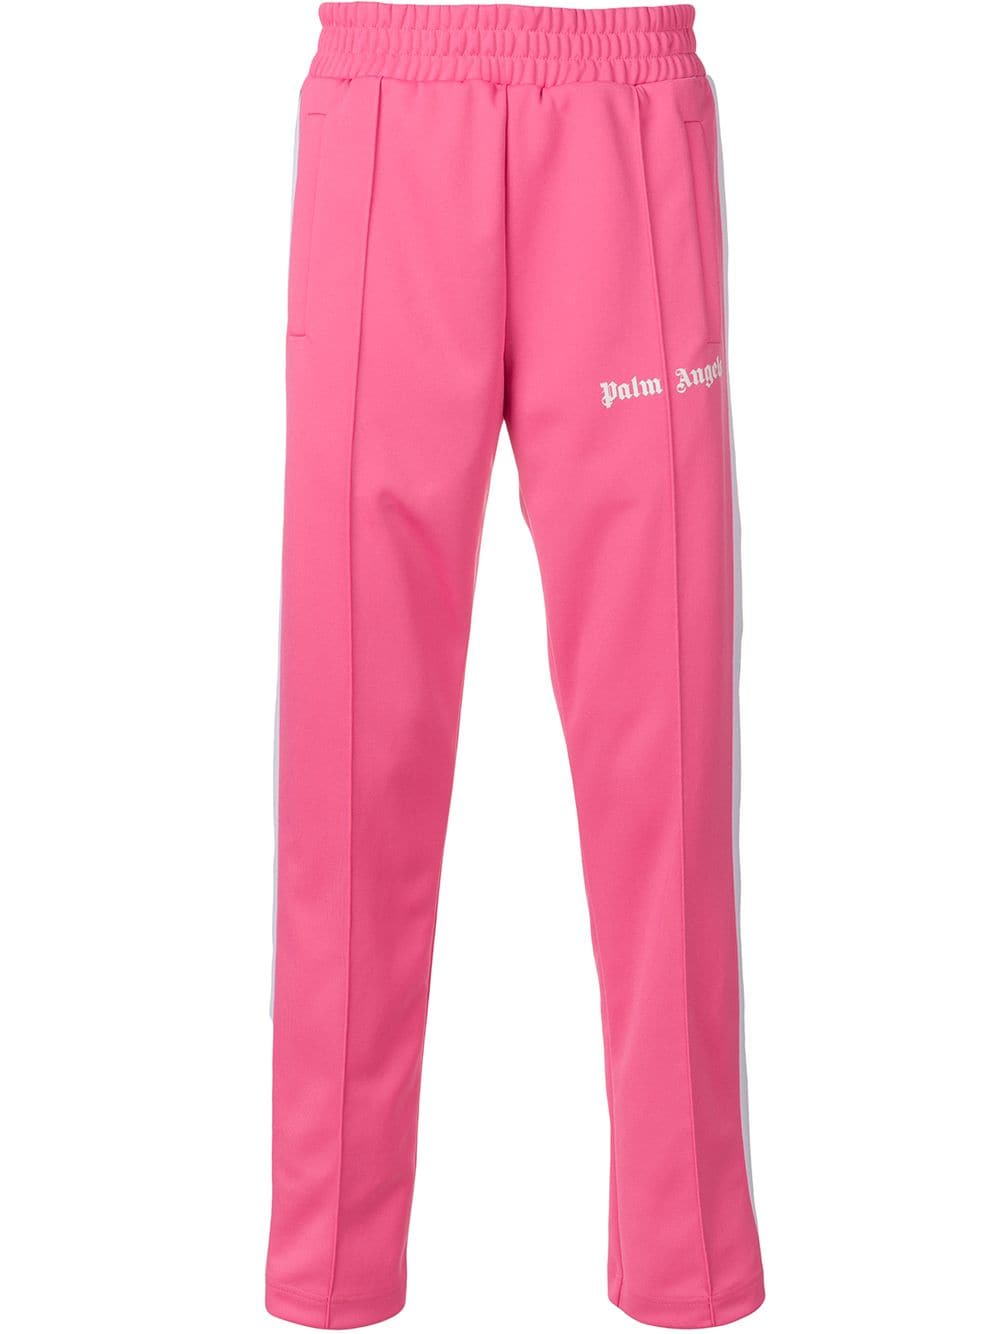 5fa07edbb7214e Palm Angels side-striped track pants - Pink in 2019 | Products ...